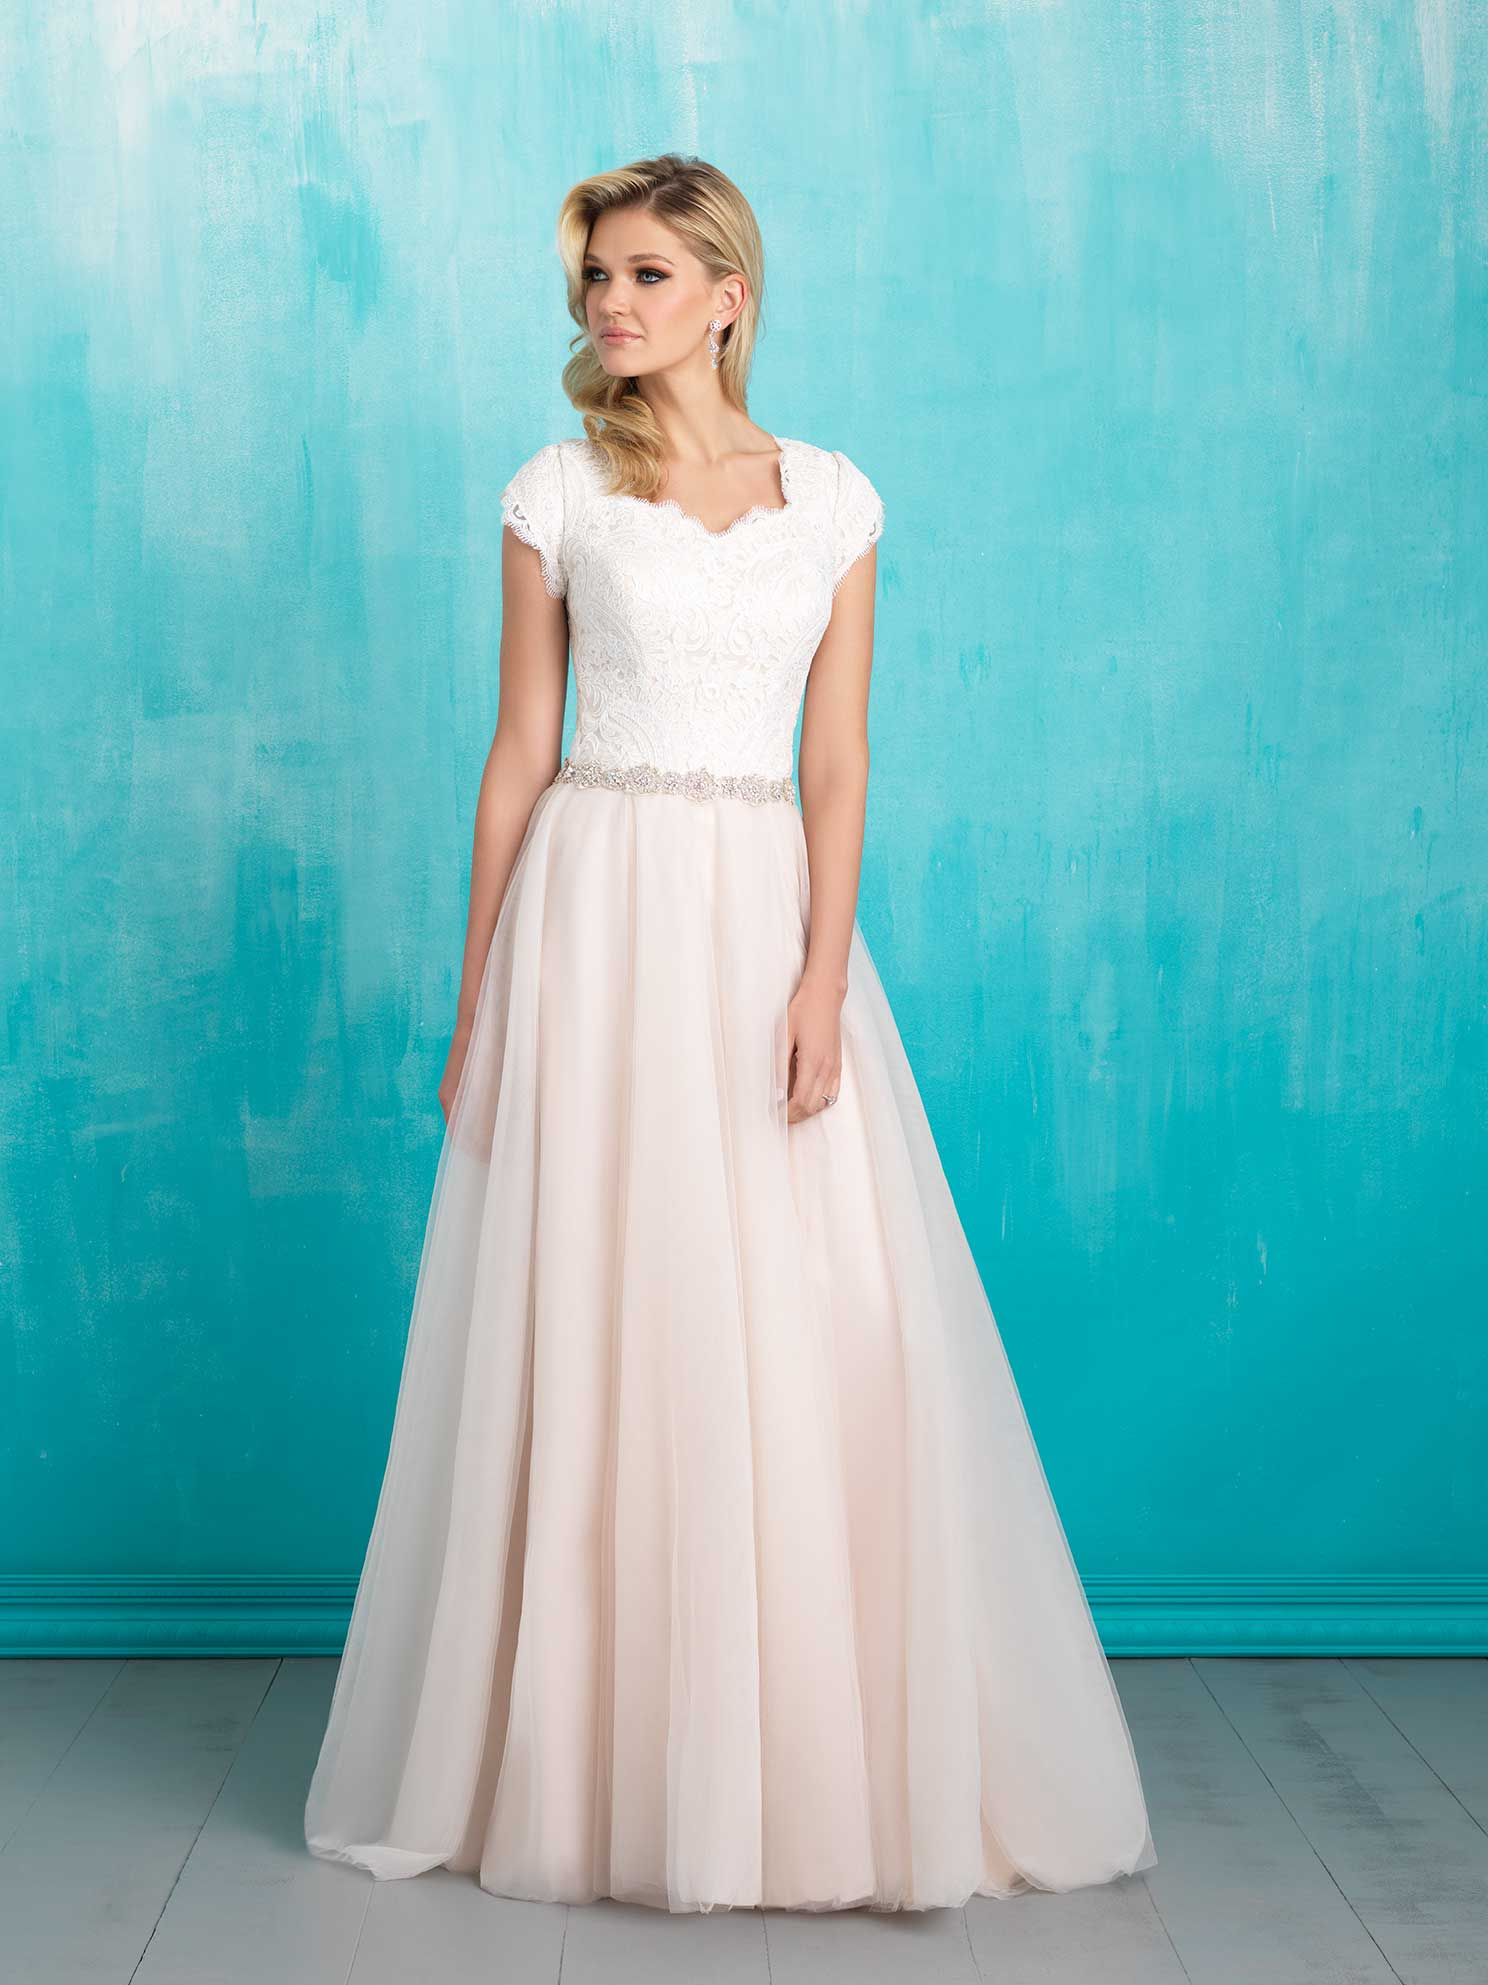 modest wedding dress shopping modest wedding dresses cheap A bride in a white and pink wedding dress standing against a blue background